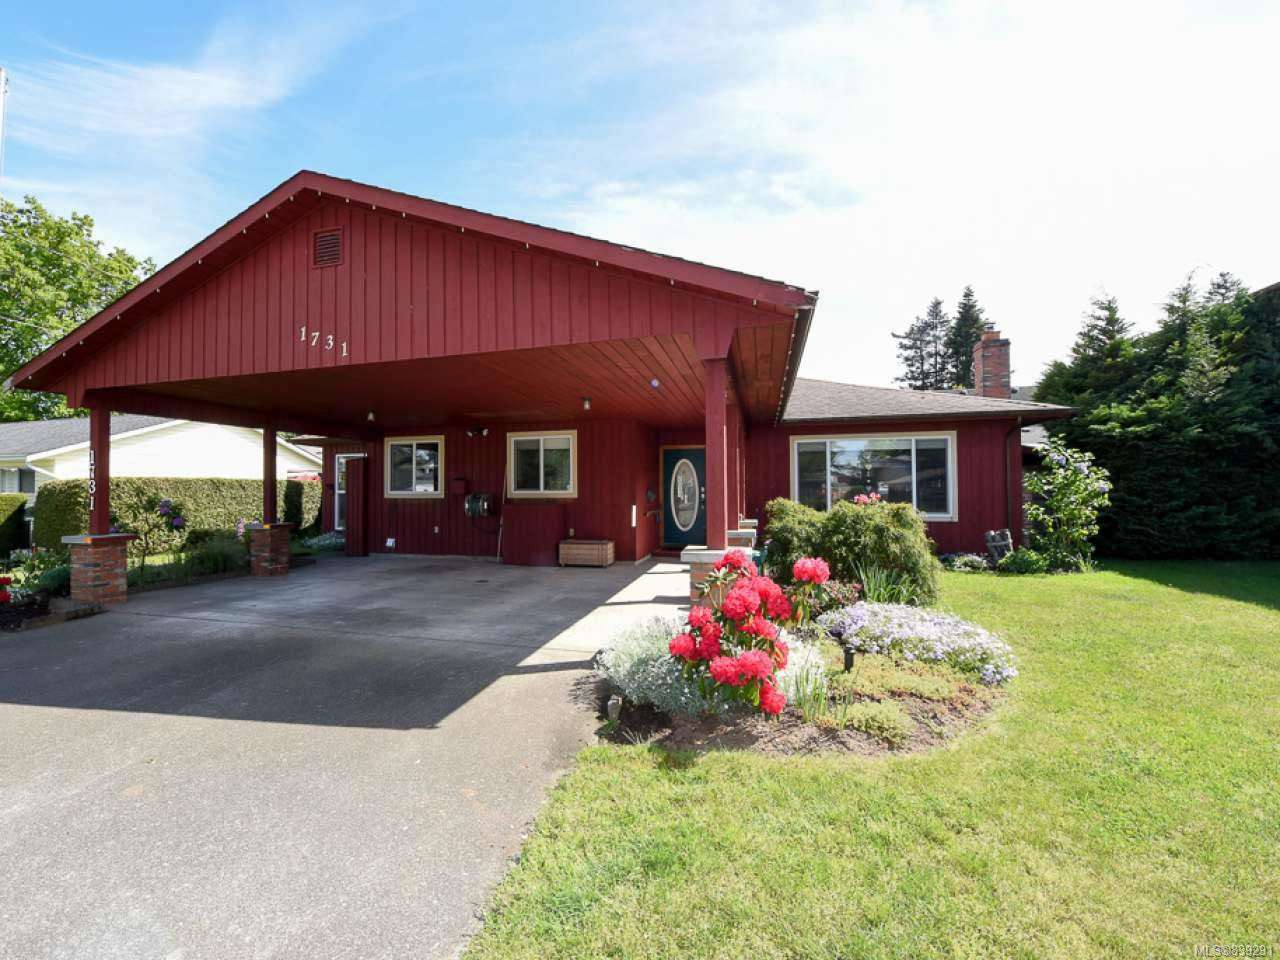 Main Photo: 1731 Tofino Pl in COMOX: CV Comox (Town of) House for sale (Comox Valley)  : MLS®# 839291